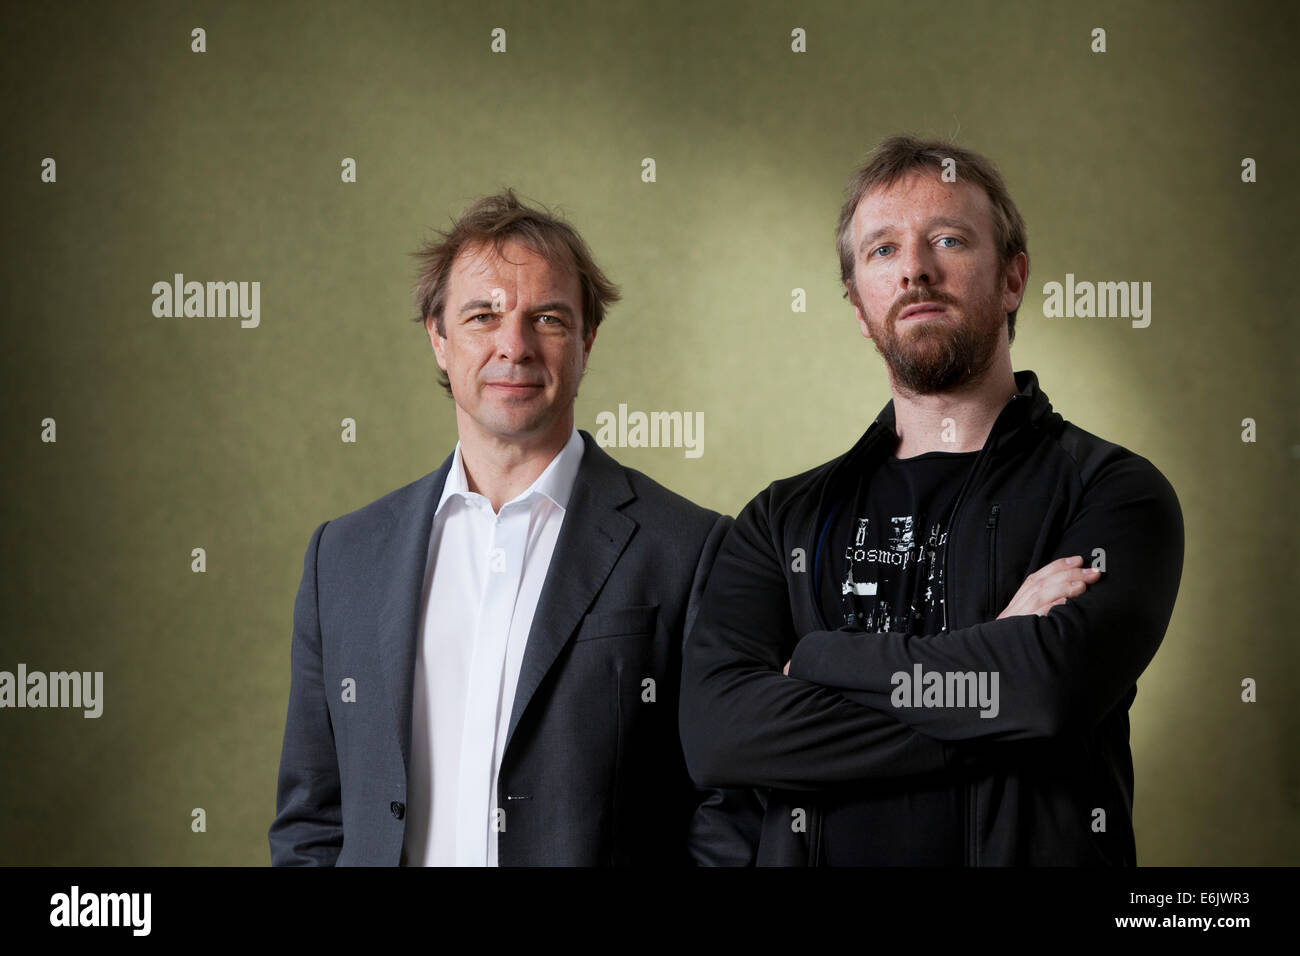 Edinburgh, Scotland, UK. 25th August, 2014. Gunnar (left) and Florian Dedio, co-authors of The Great War Diaries, - Stock Image